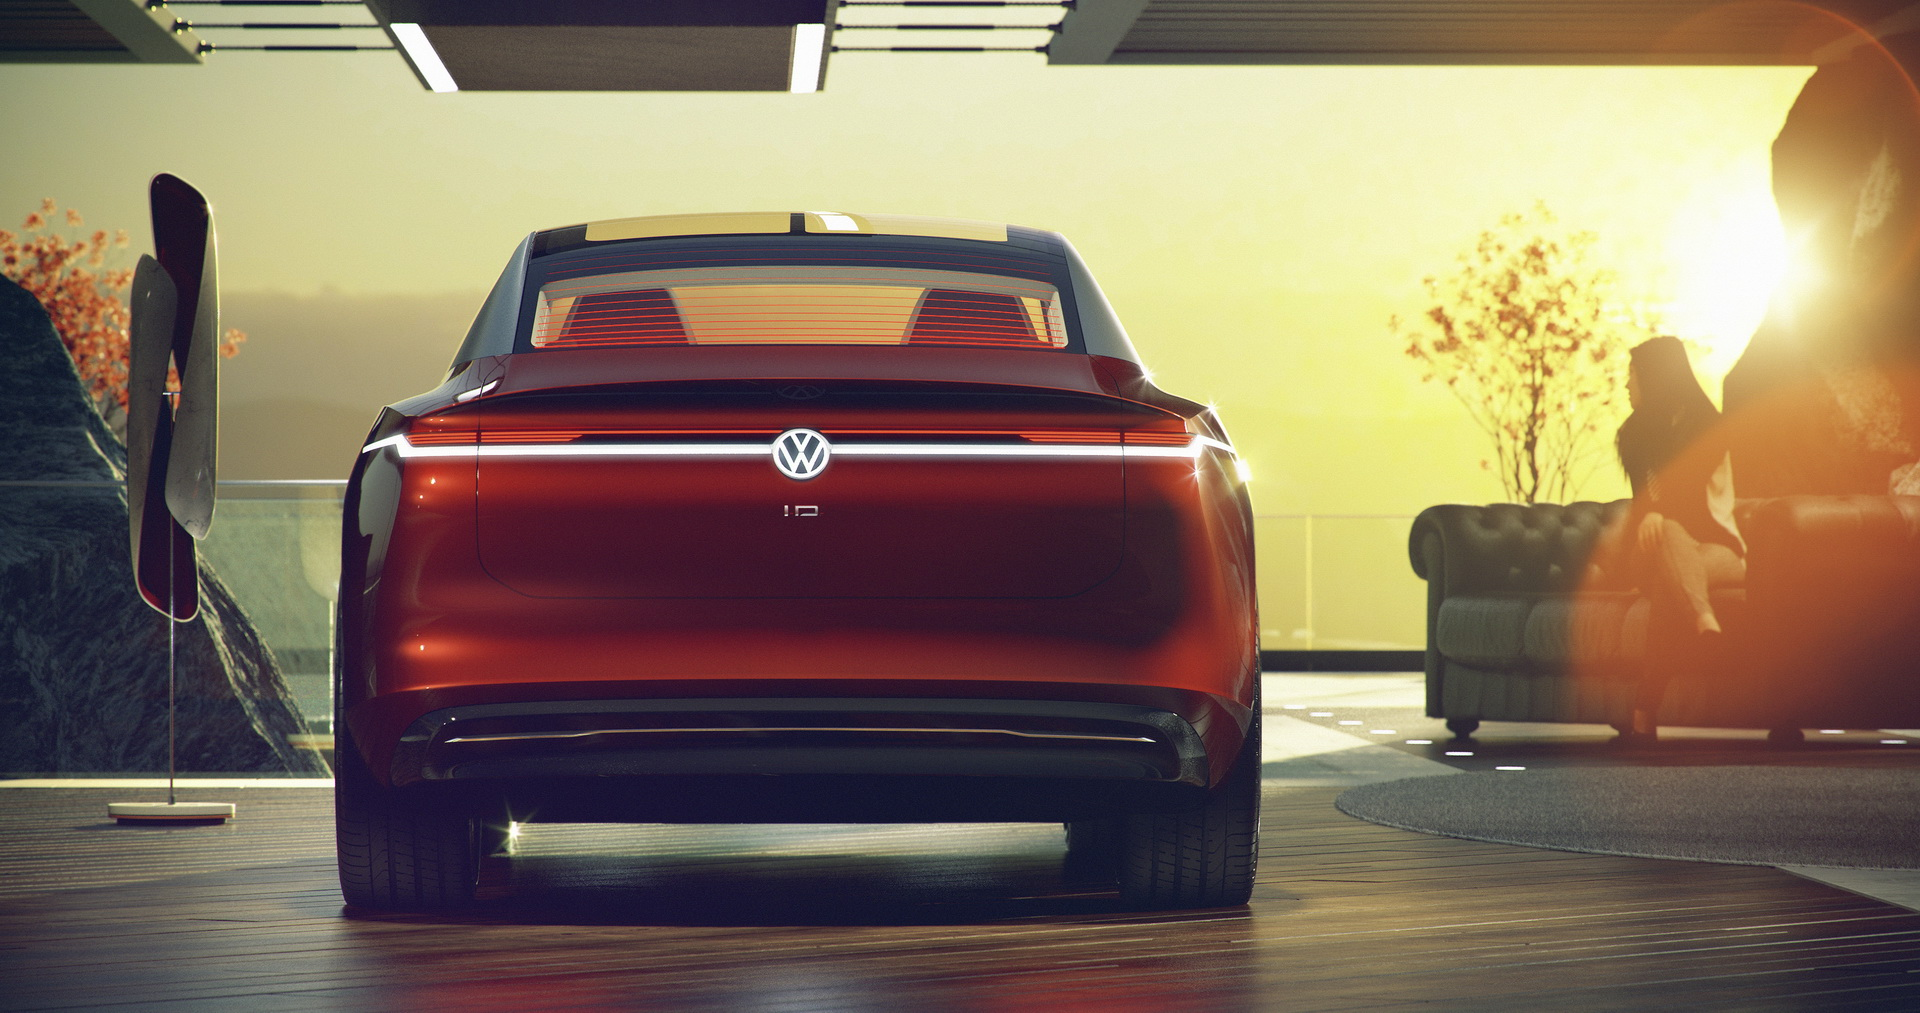 vw-id-vizzion-geneva-official-12.jpg